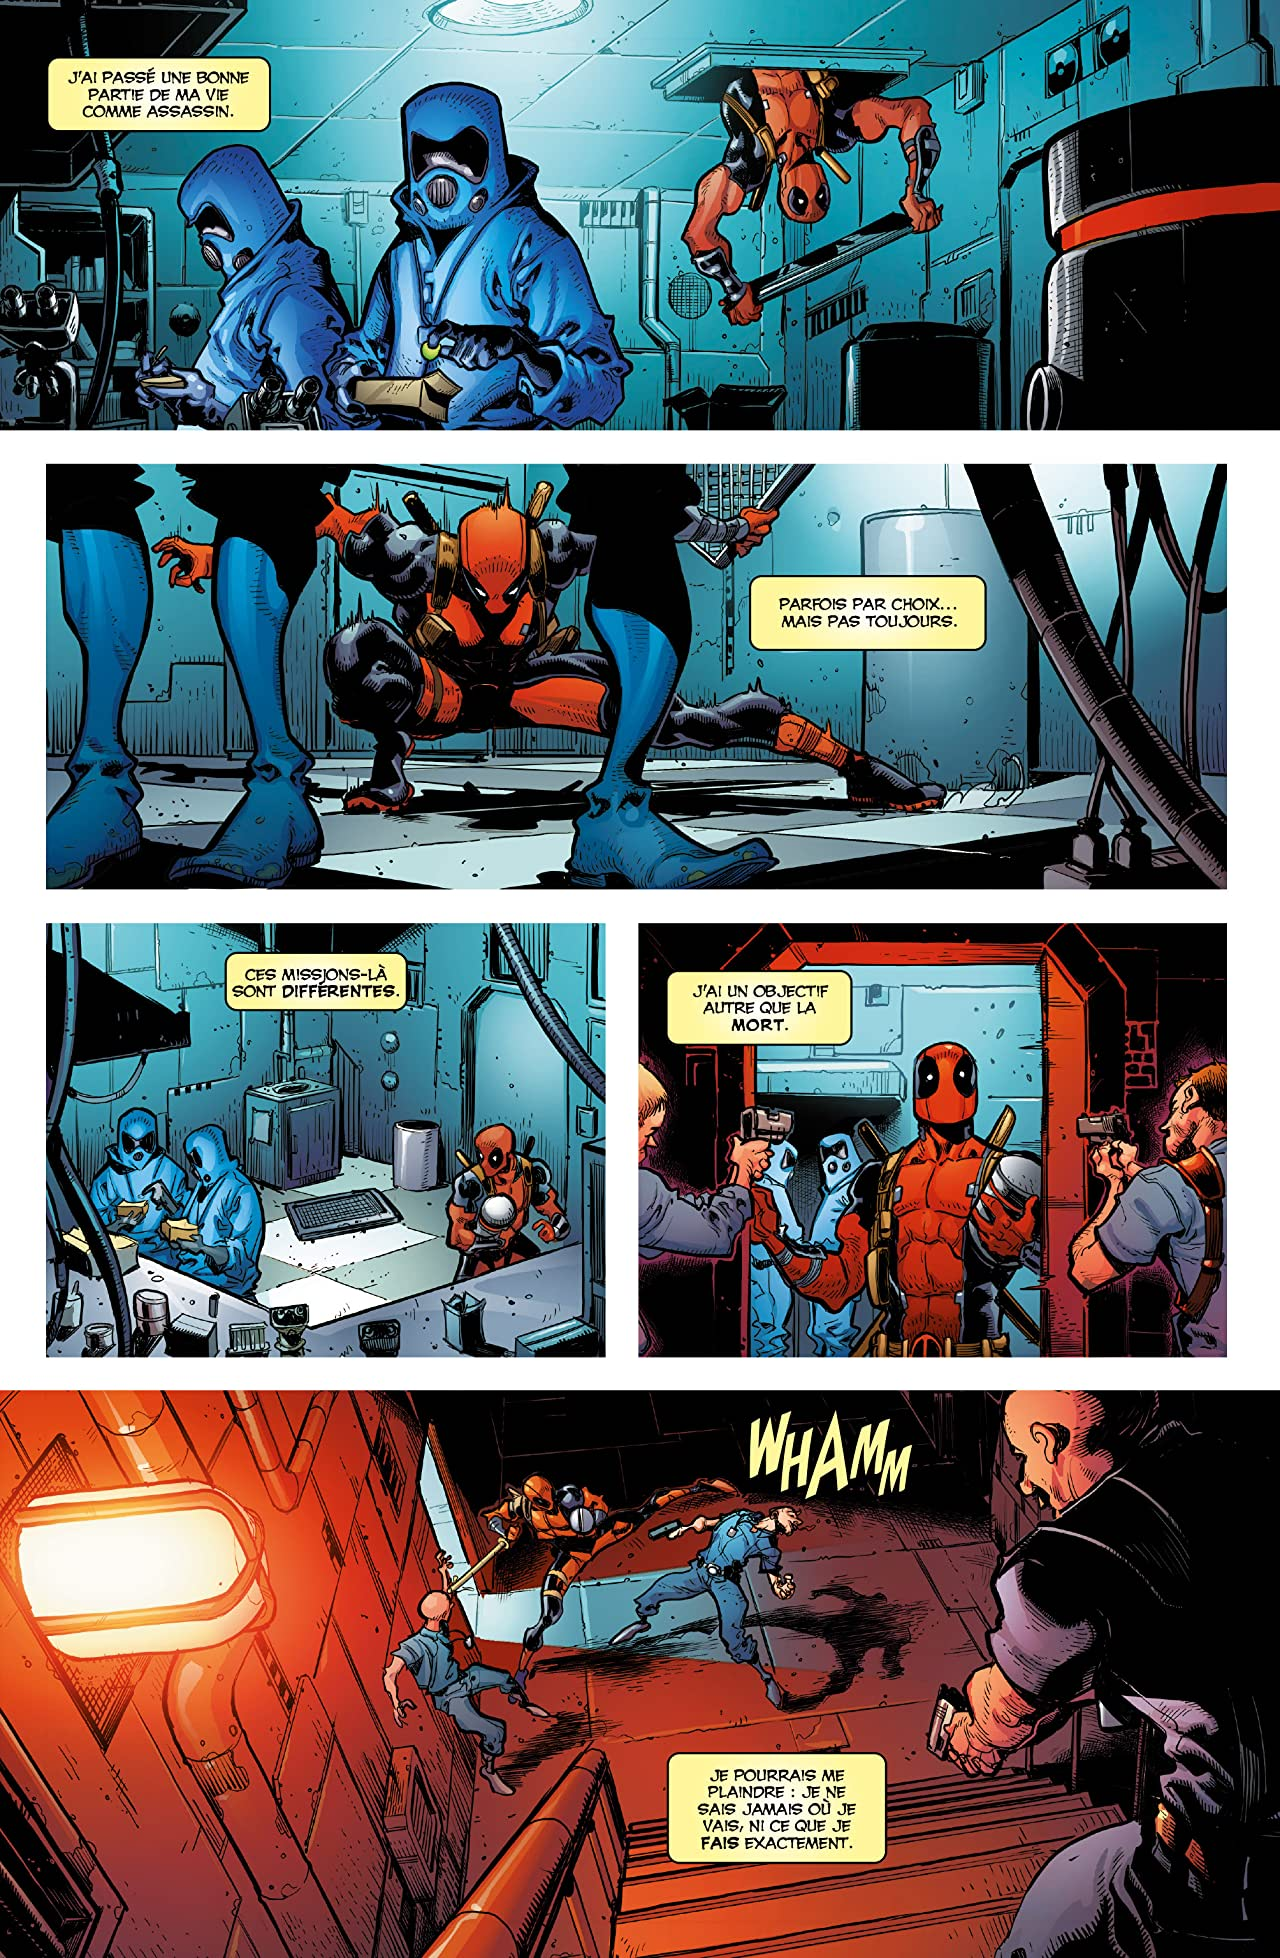 All-New Uncanny Avengers Vol. 1: Futur perdu